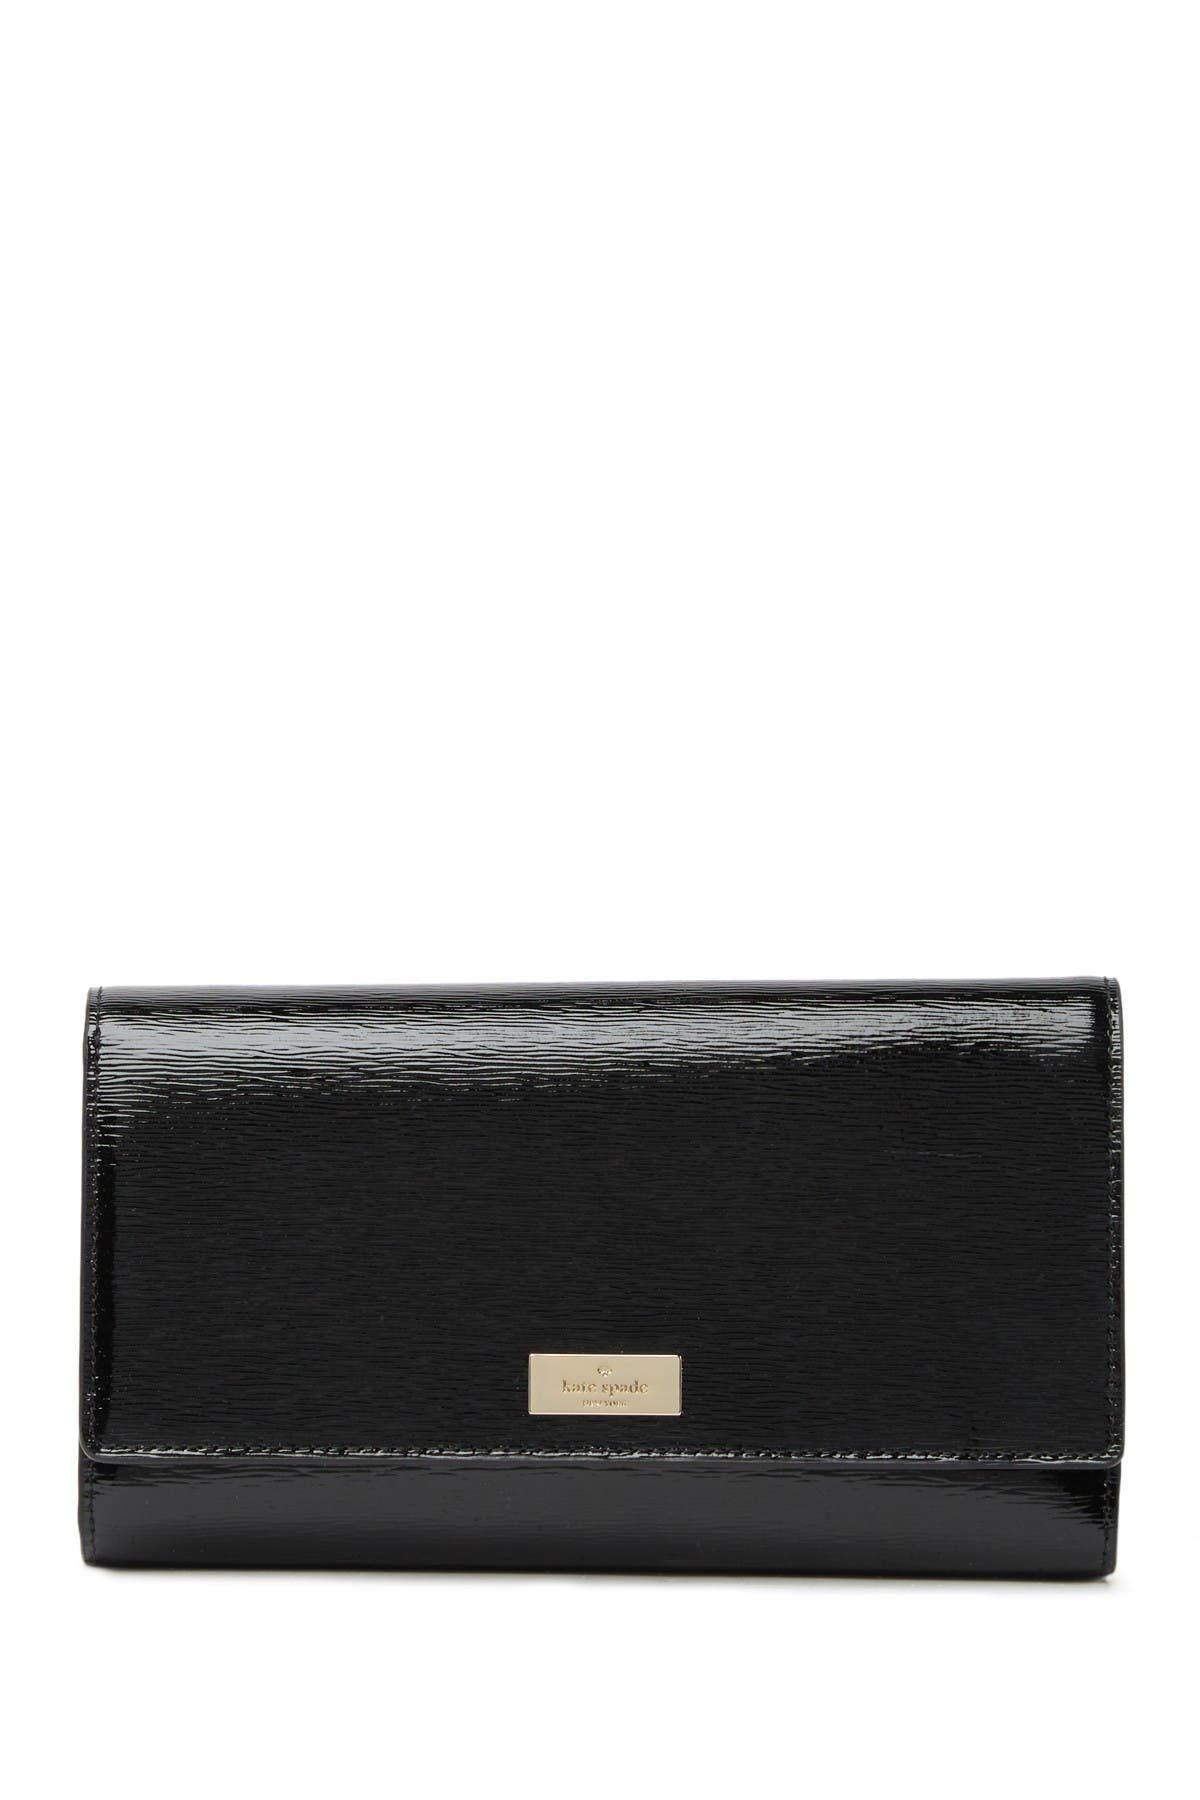 Image of kate spade new york phoenix leather wallet